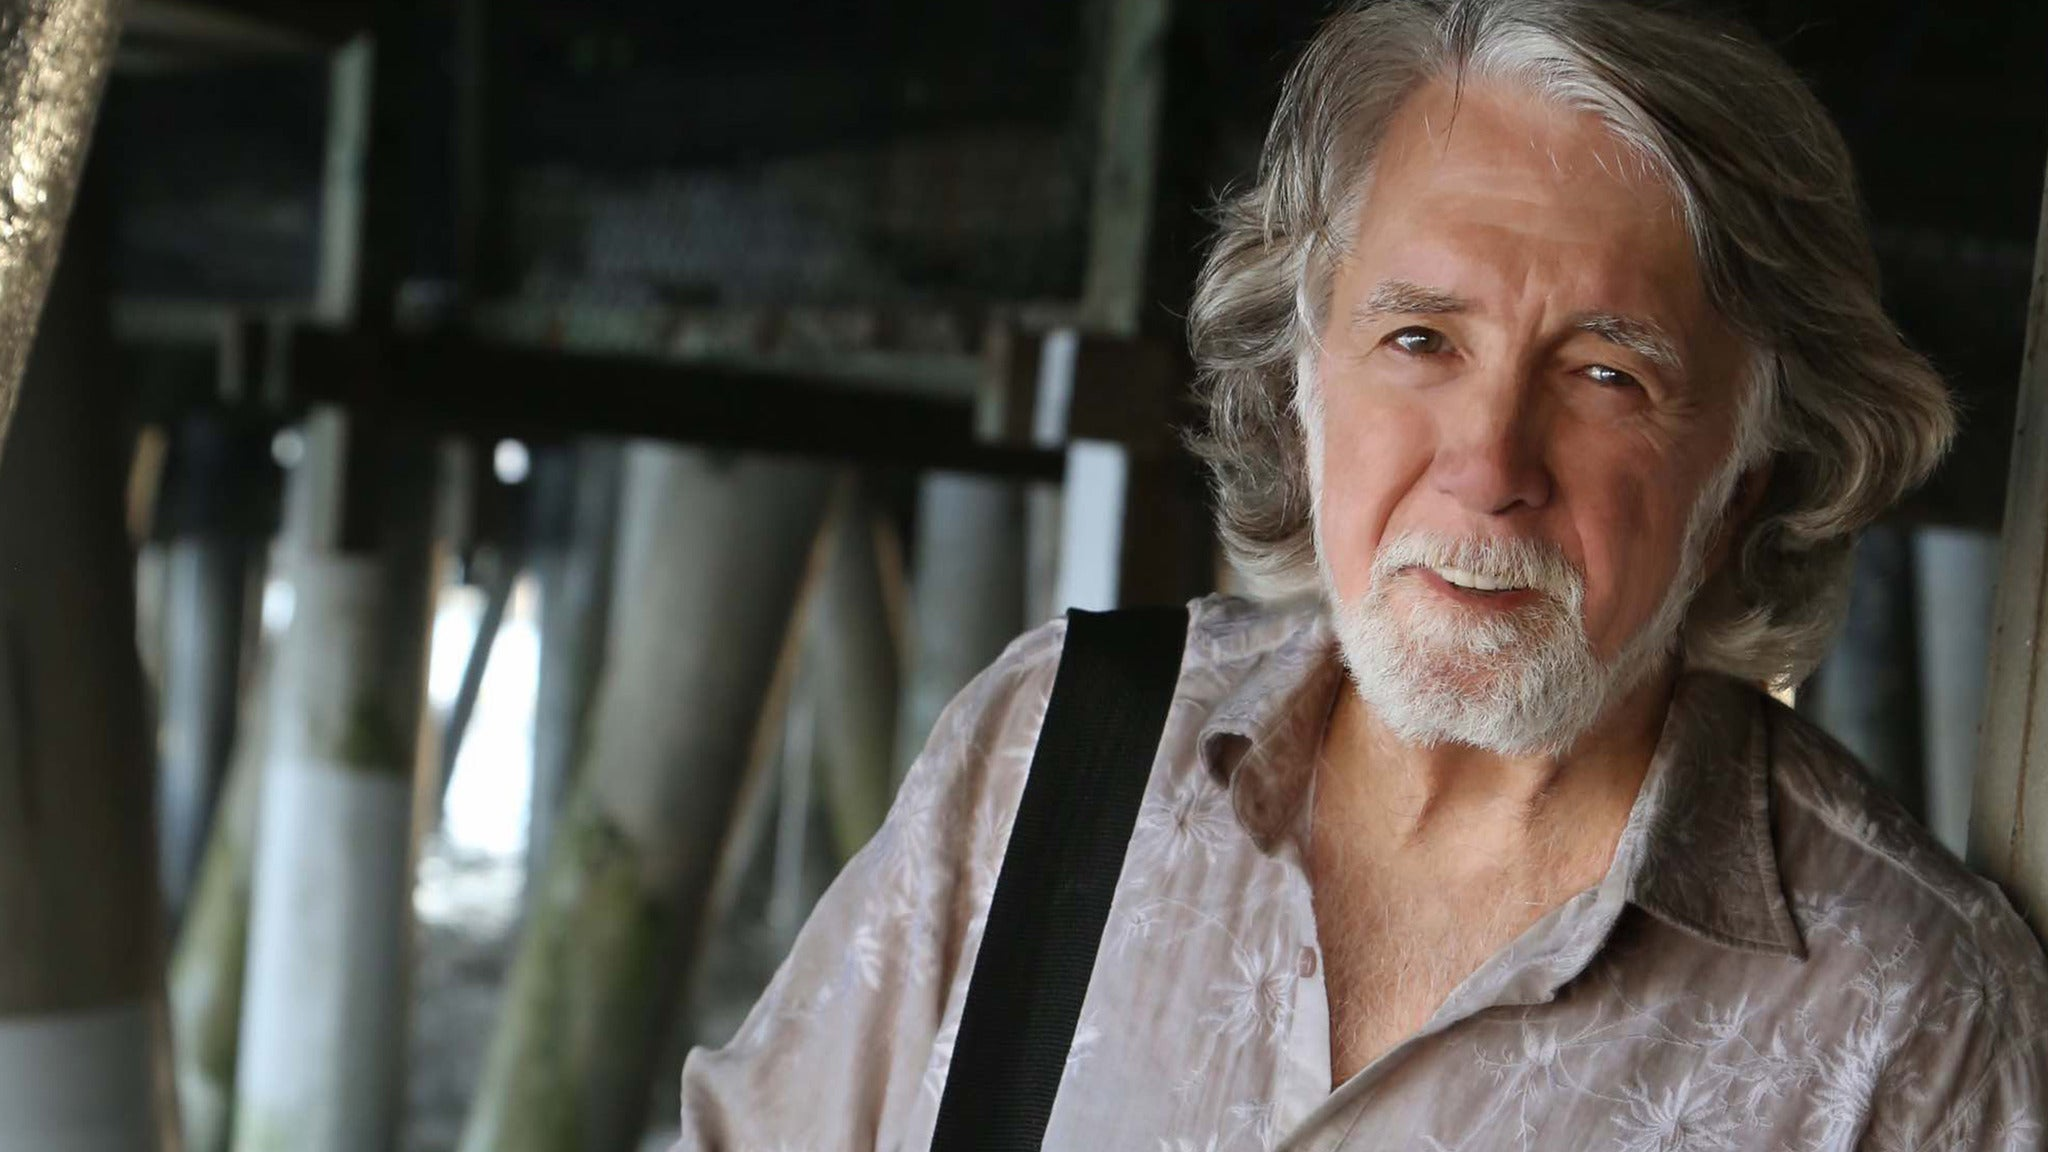 John McEuen at Cheyenne Civic Center